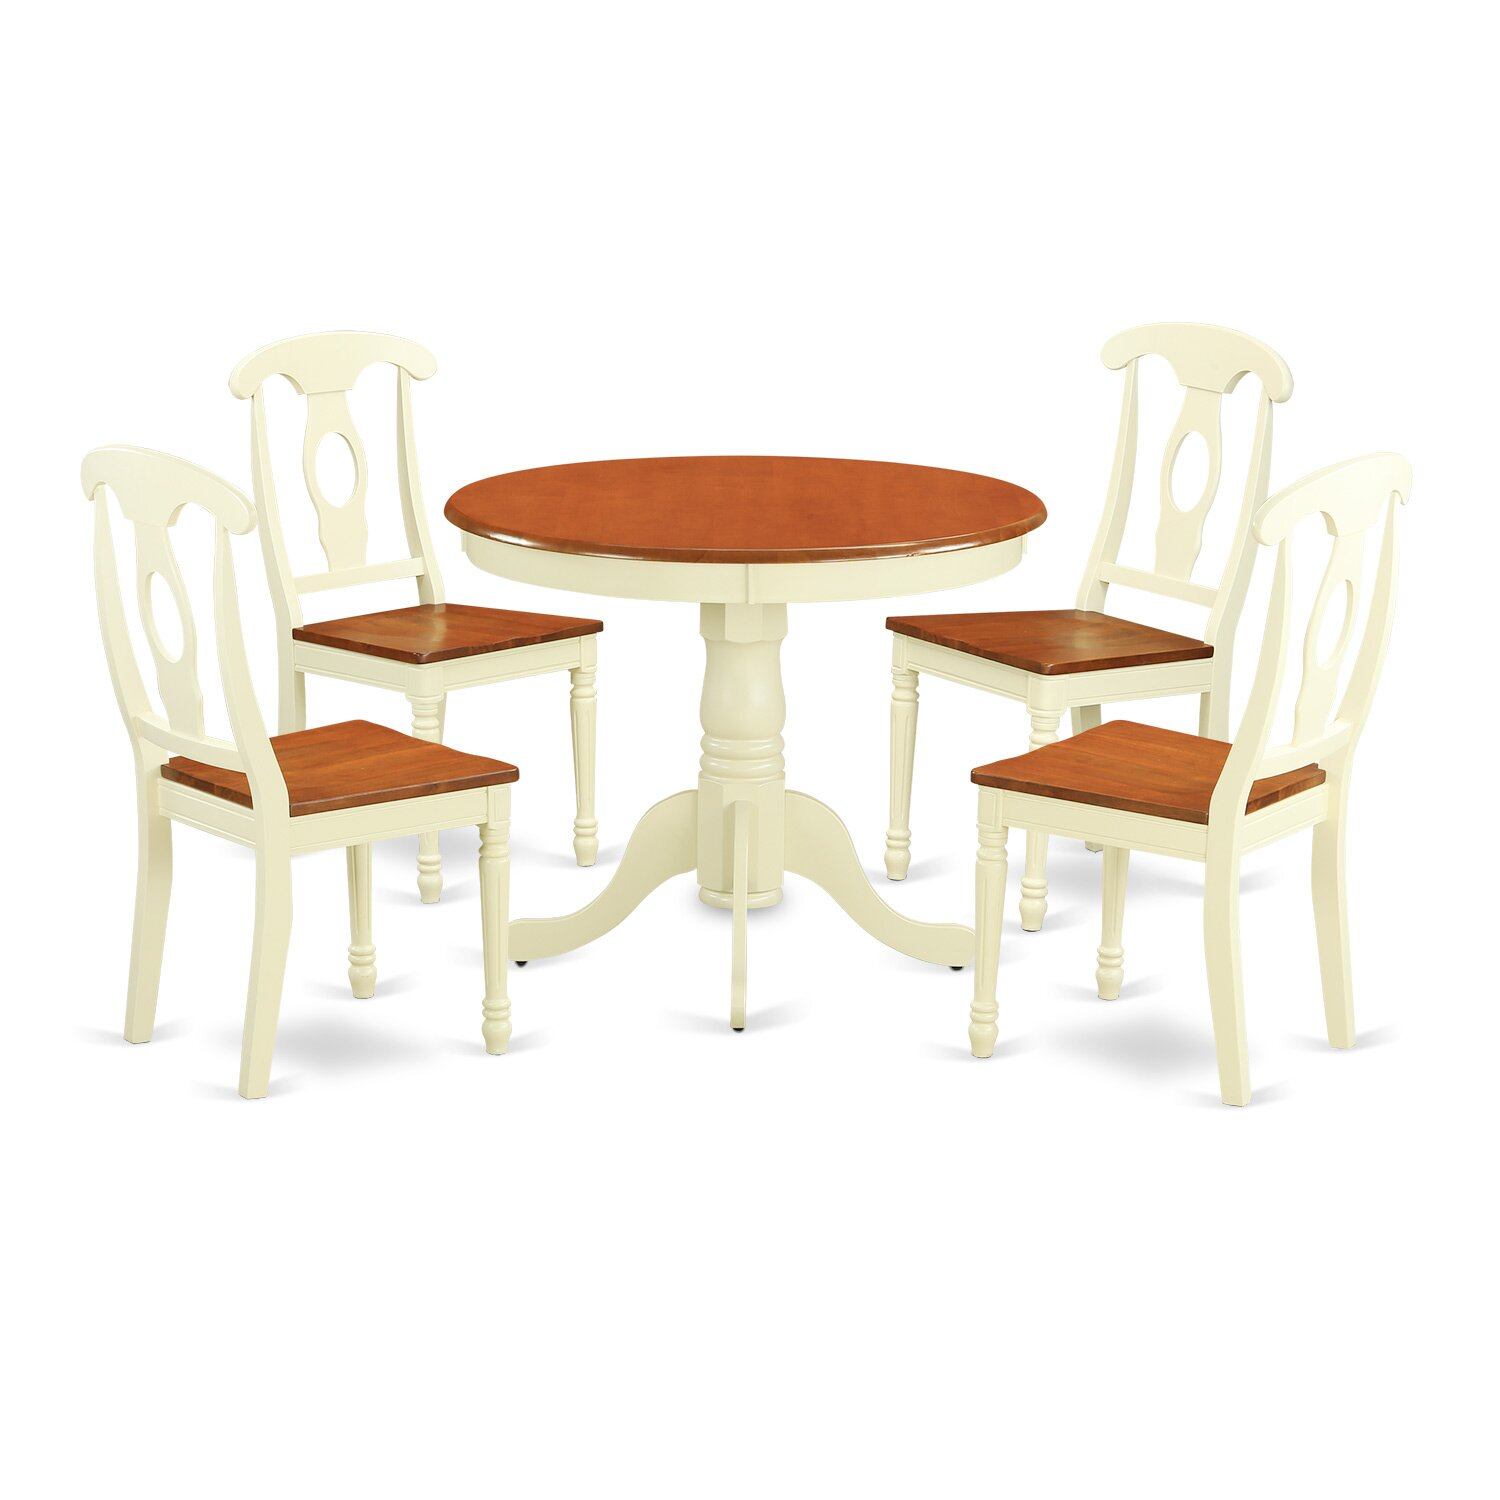 East west 5 piece dining set wayfair for Kitchen and dining room chairs